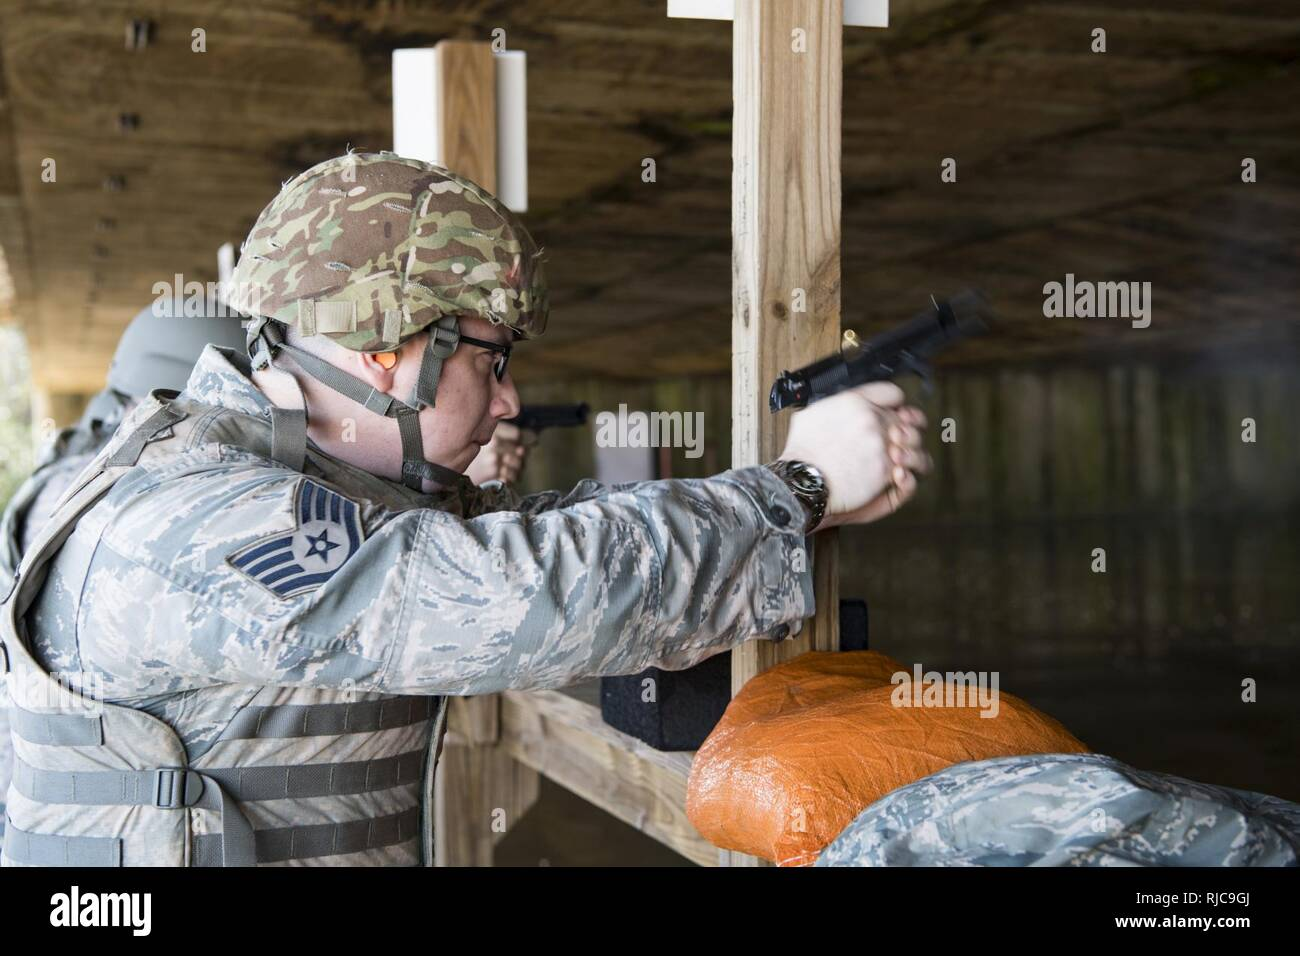 9184d4910b7 U.S. Air Force Staff Sgt. Nathan Parsons shoots the Beretta M9 handgun  downrange as part